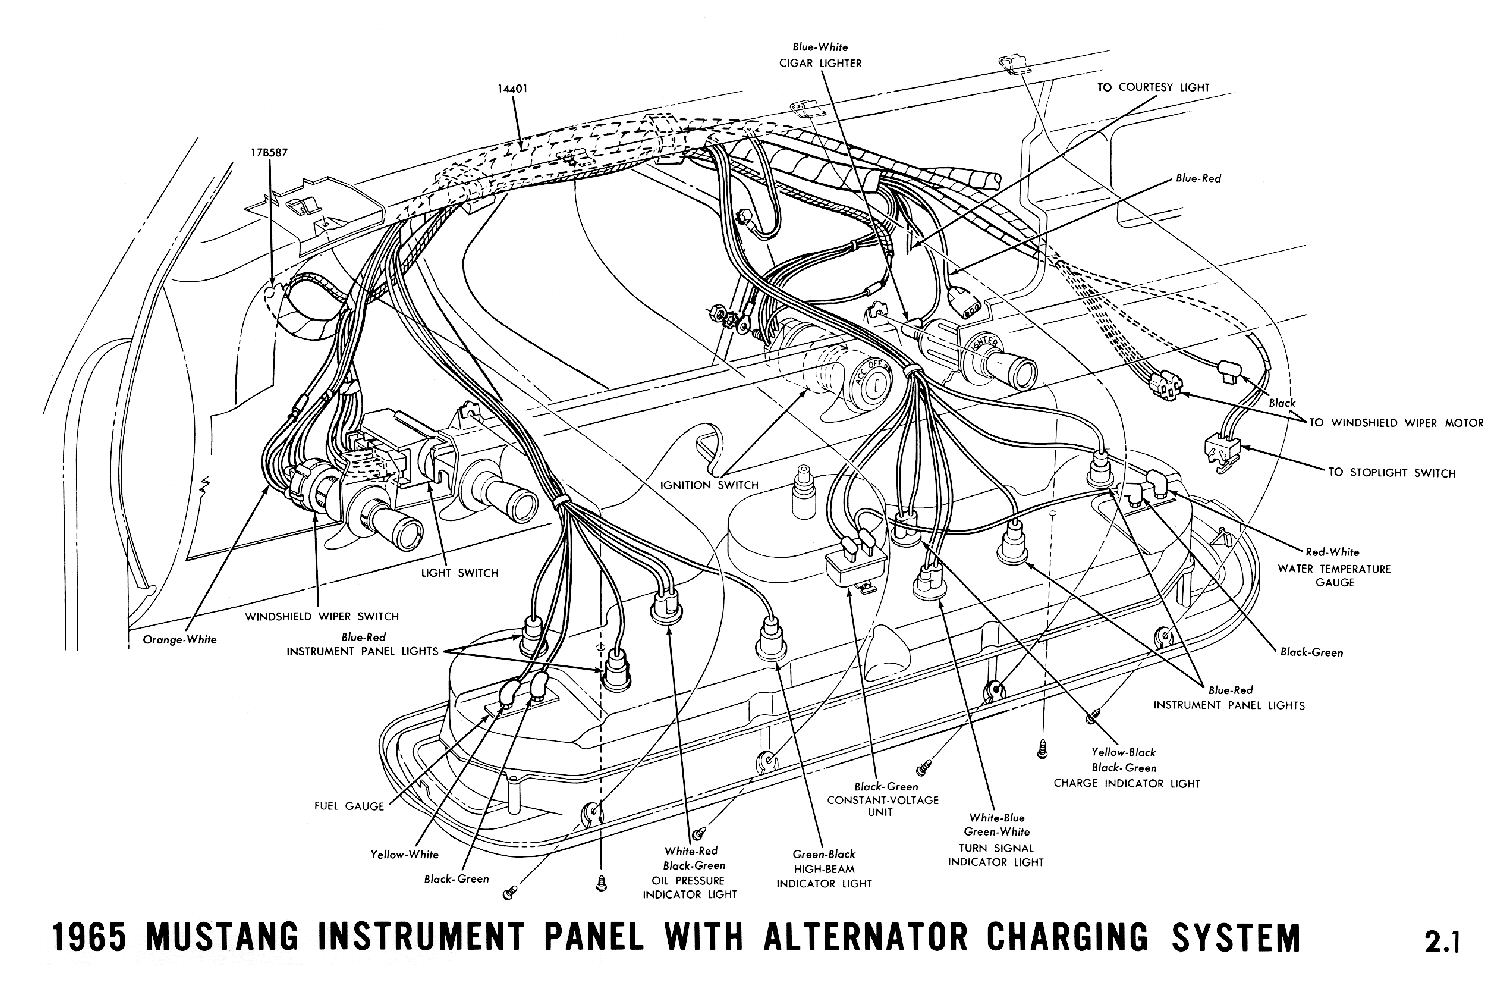 1965 mustang wiring diagrams average joe restoration rh averagejoerestoration com 1965 mustang horn wiring diagram 1965 mustang ignition wiring diagram